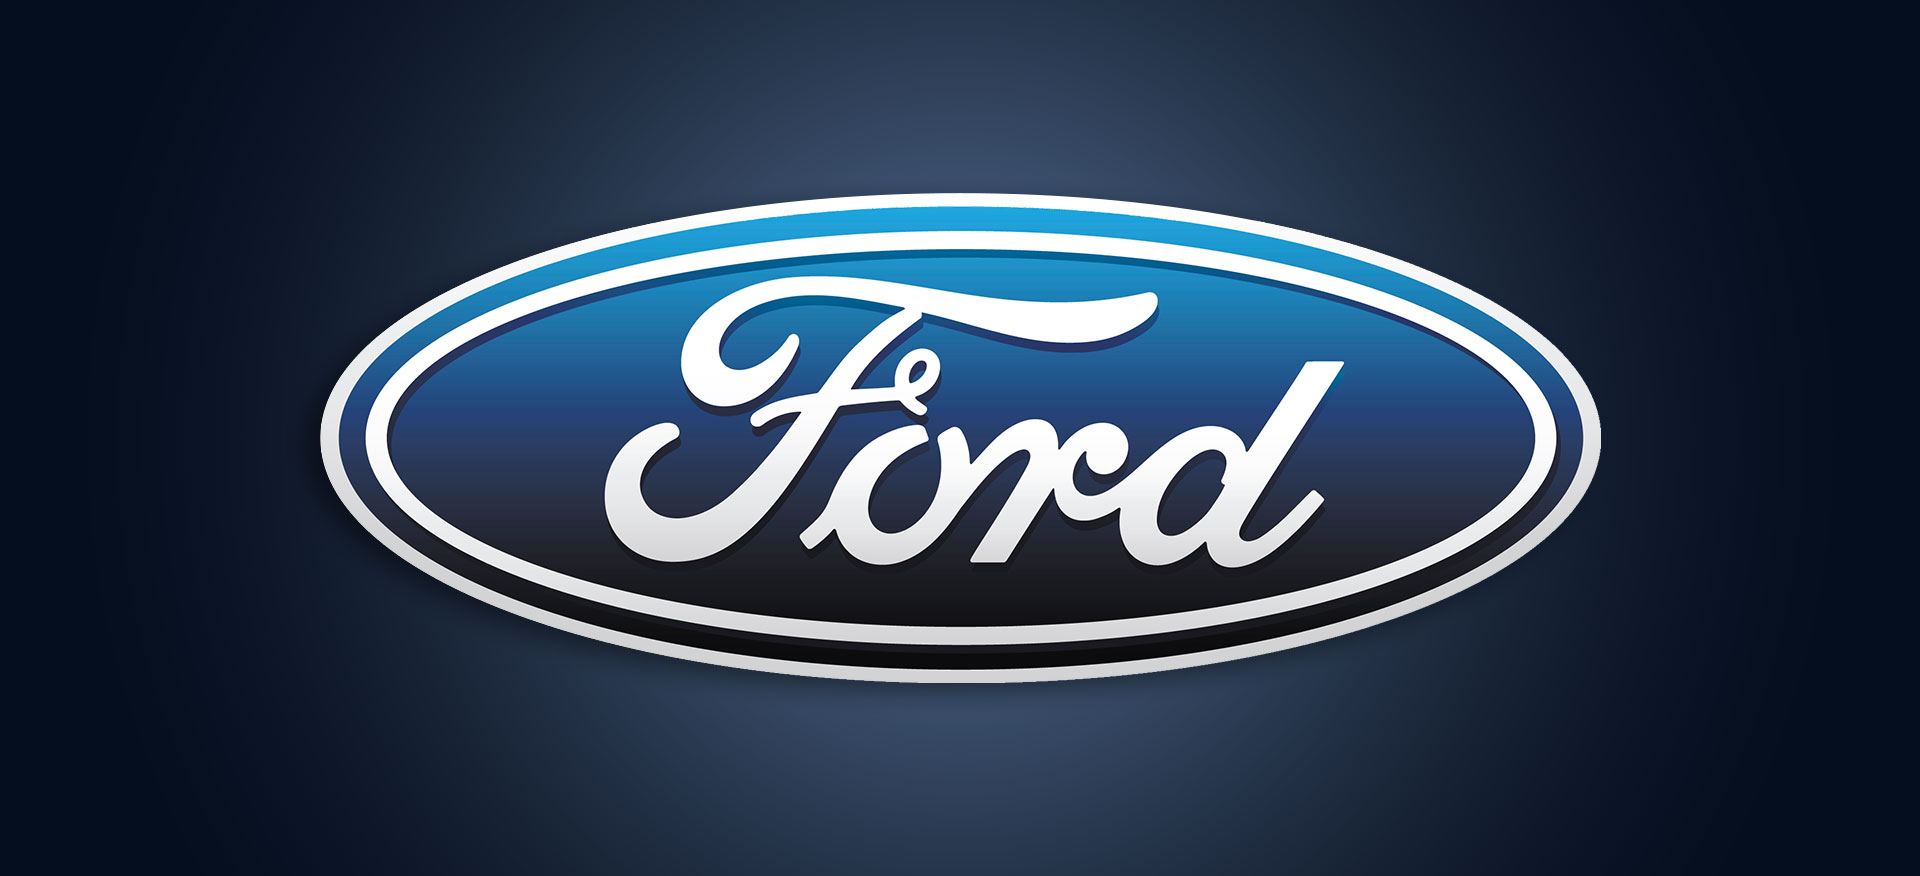 Ford f 150 problems ford complaints recall information Ford motor company complaints